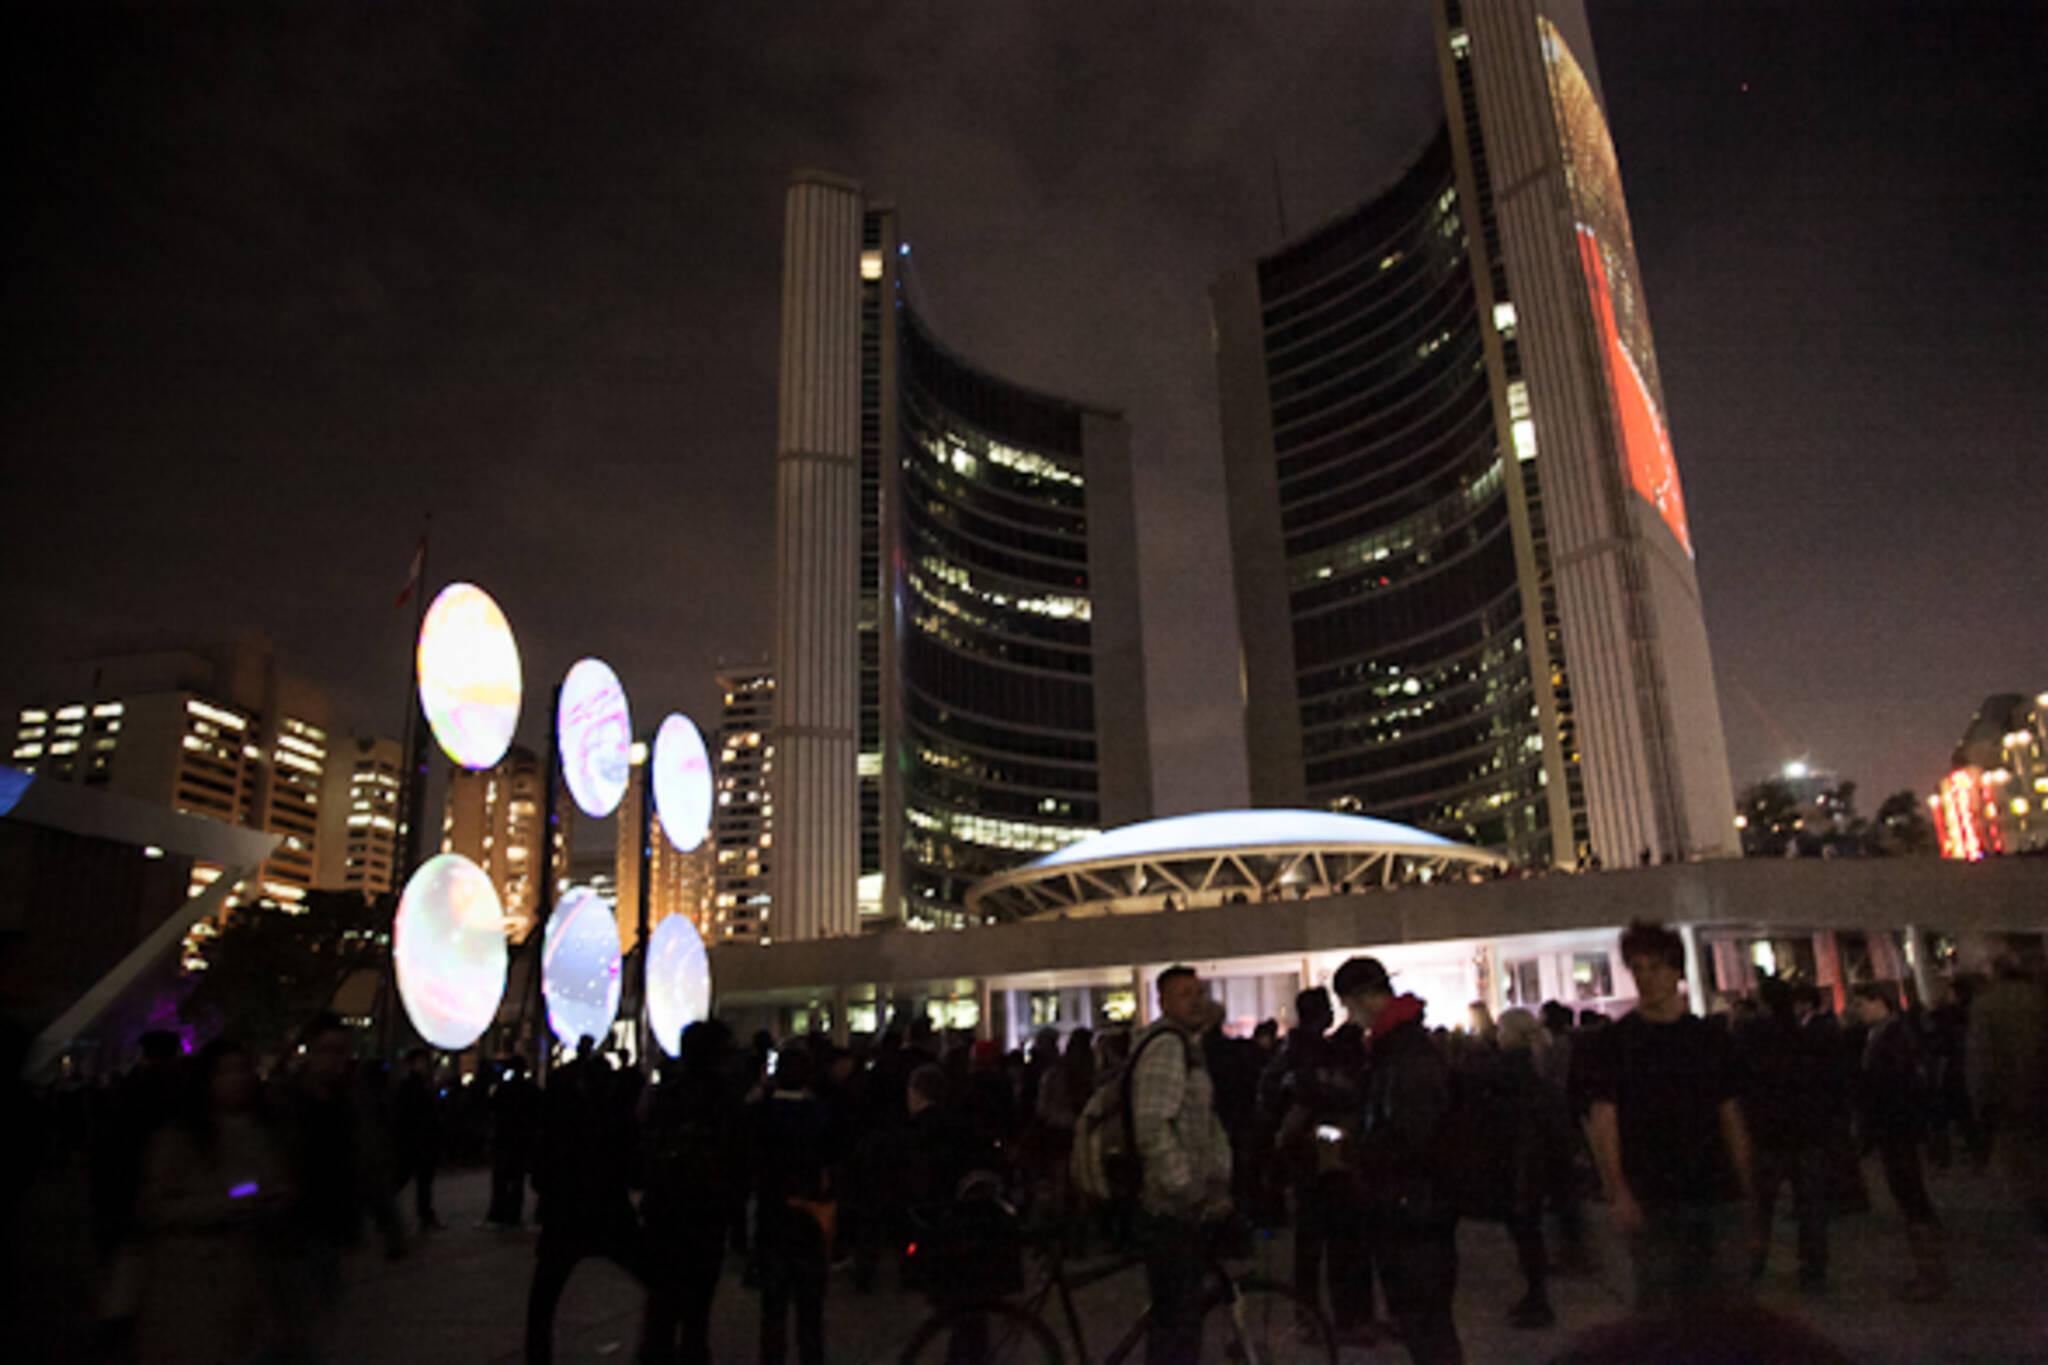 Nuit Blanche 2012 City Hall